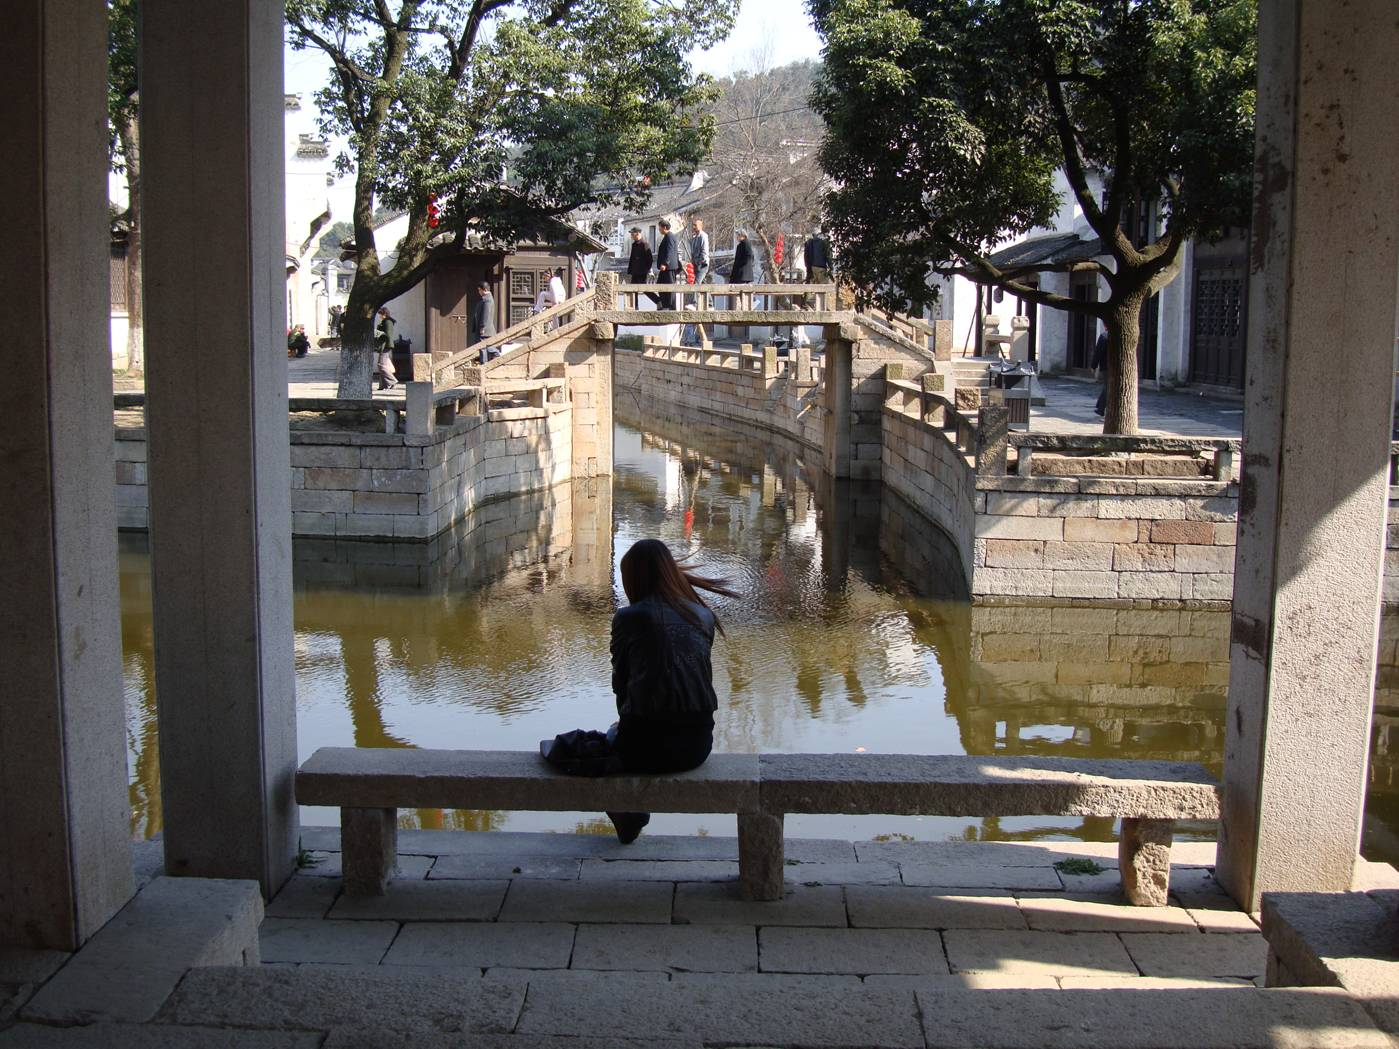 Picture:  A girl waits beside the sunlit canal.  Wuxi old city, Wuxi, China